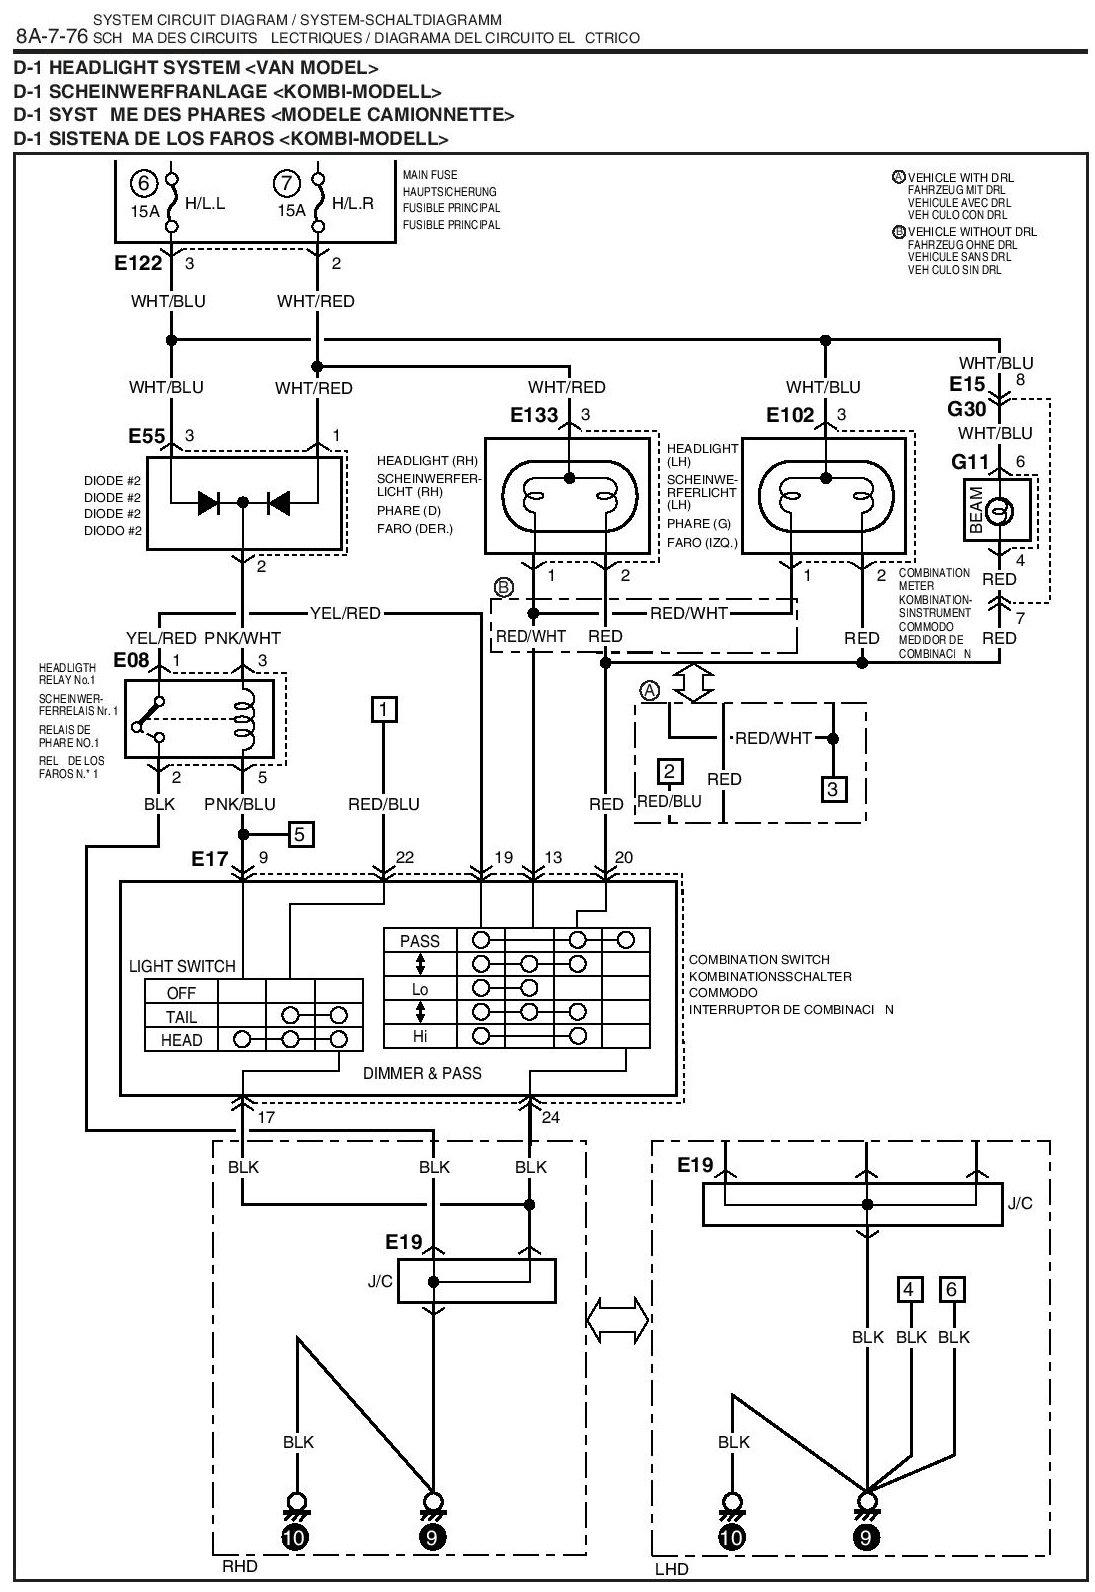 Led Spotlight: Led Spotlight Wiring Diagram